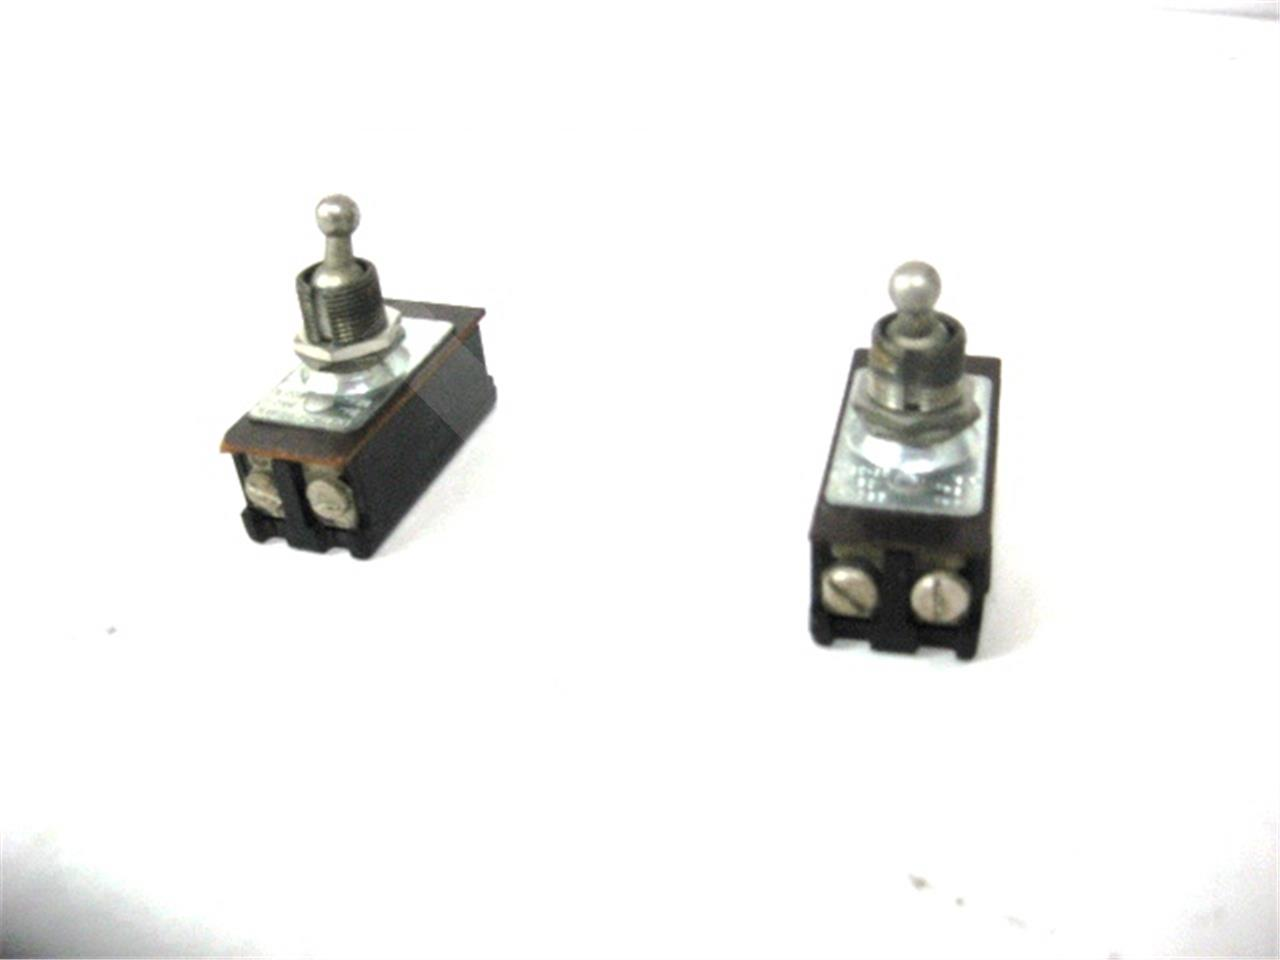 703270-A ITE SPRING MOTOR DISCONNECT SWITCH TOGGLE FOR LK / K-LINE / HK